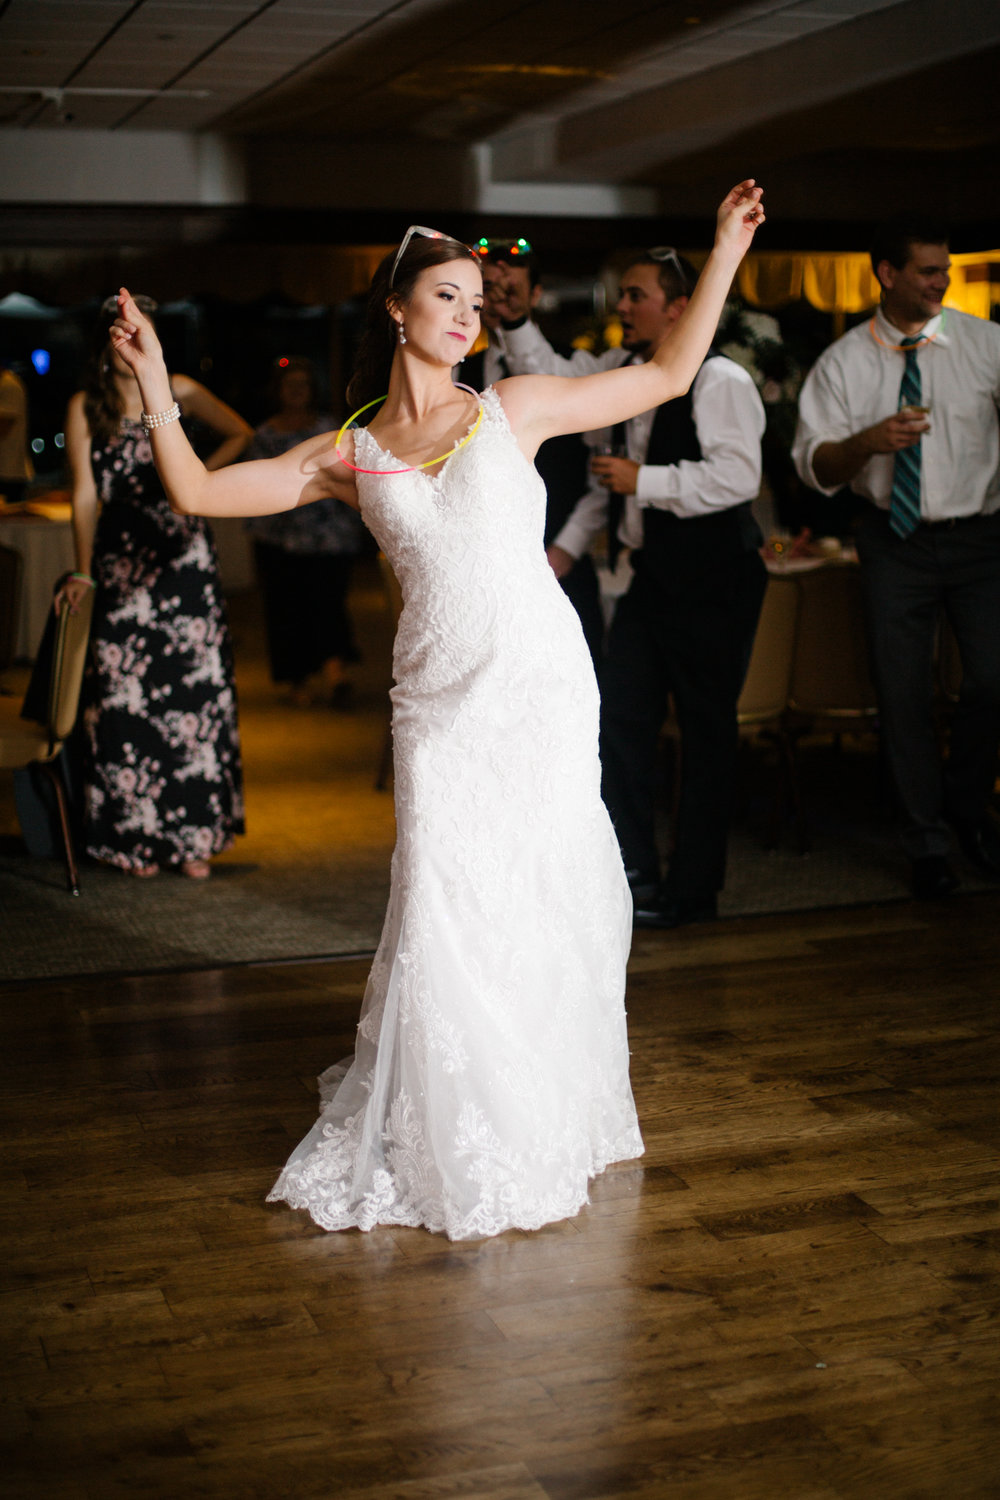 Gulfport_Wedding_Photographer-126.jpg